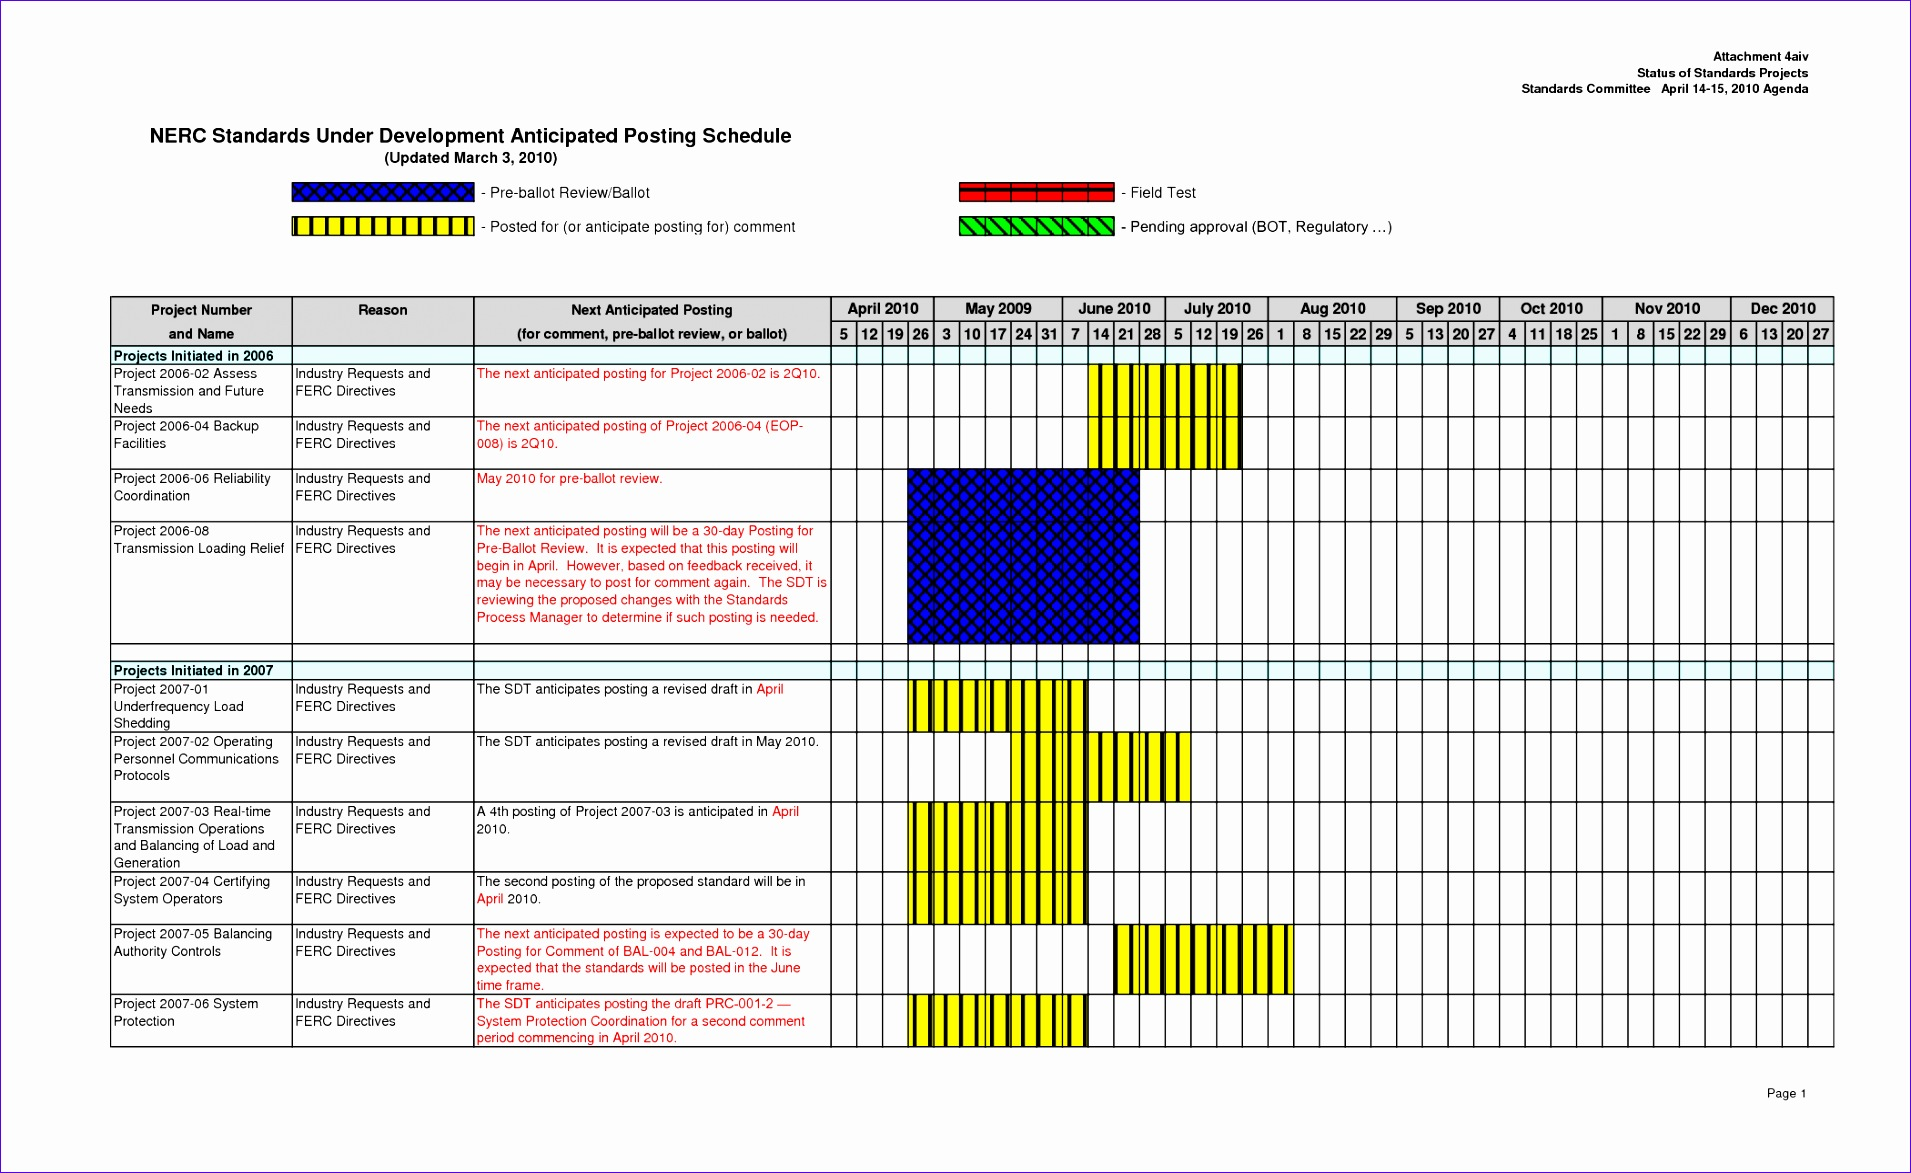 excel project management template 1ltocebz